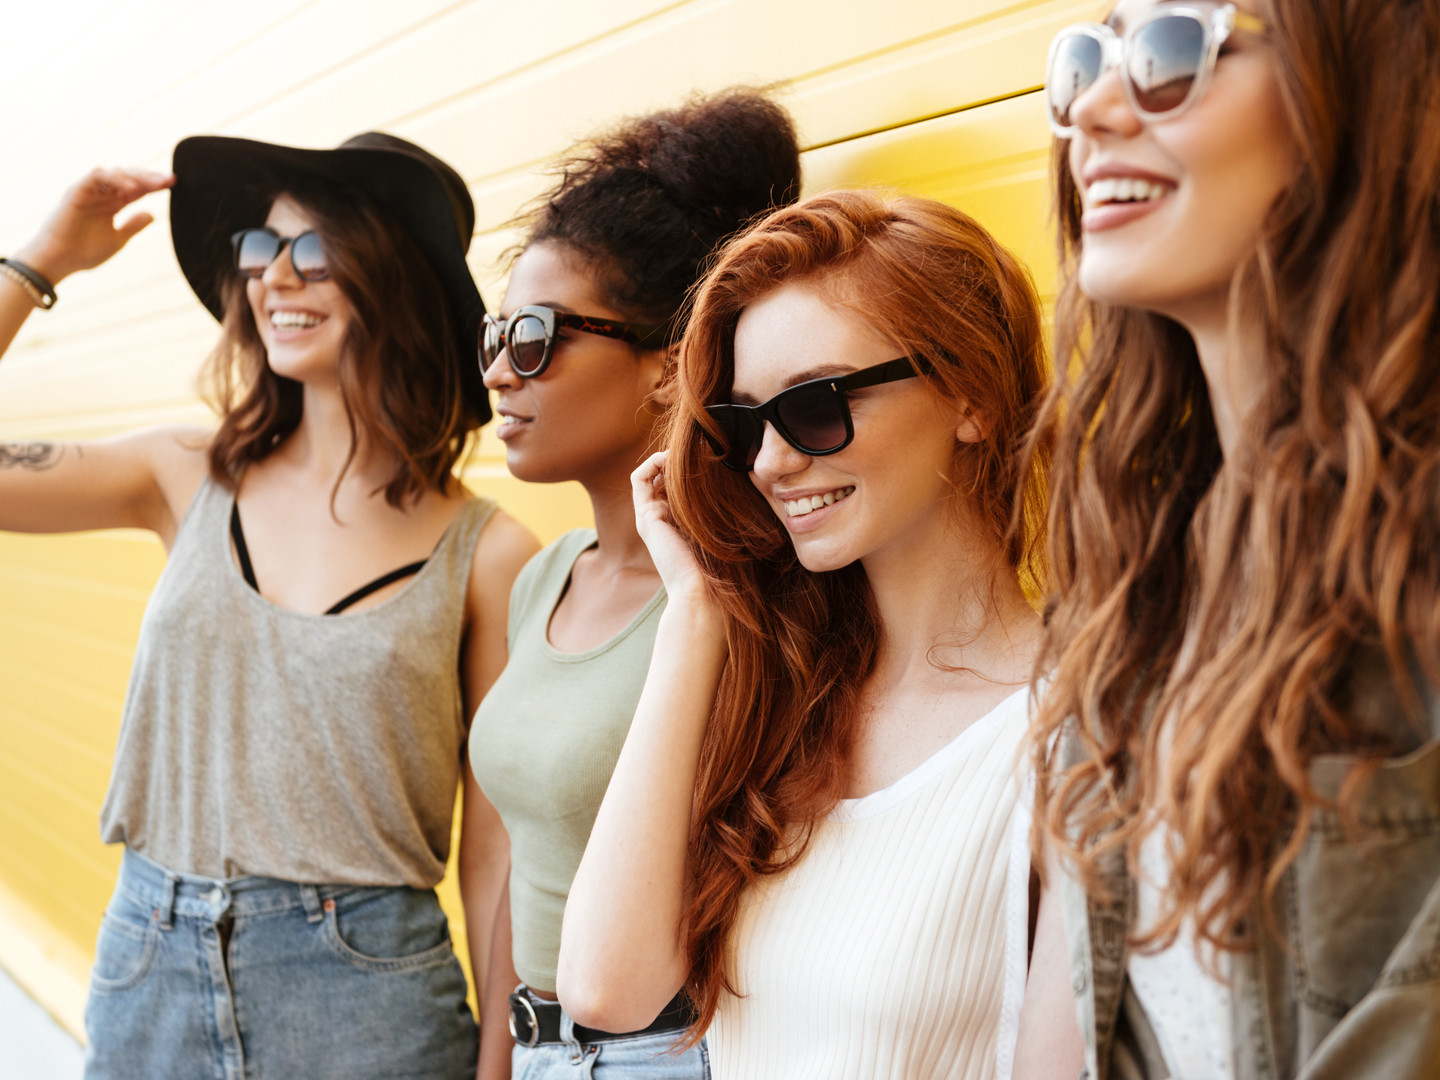 Picture of four young happy women friend